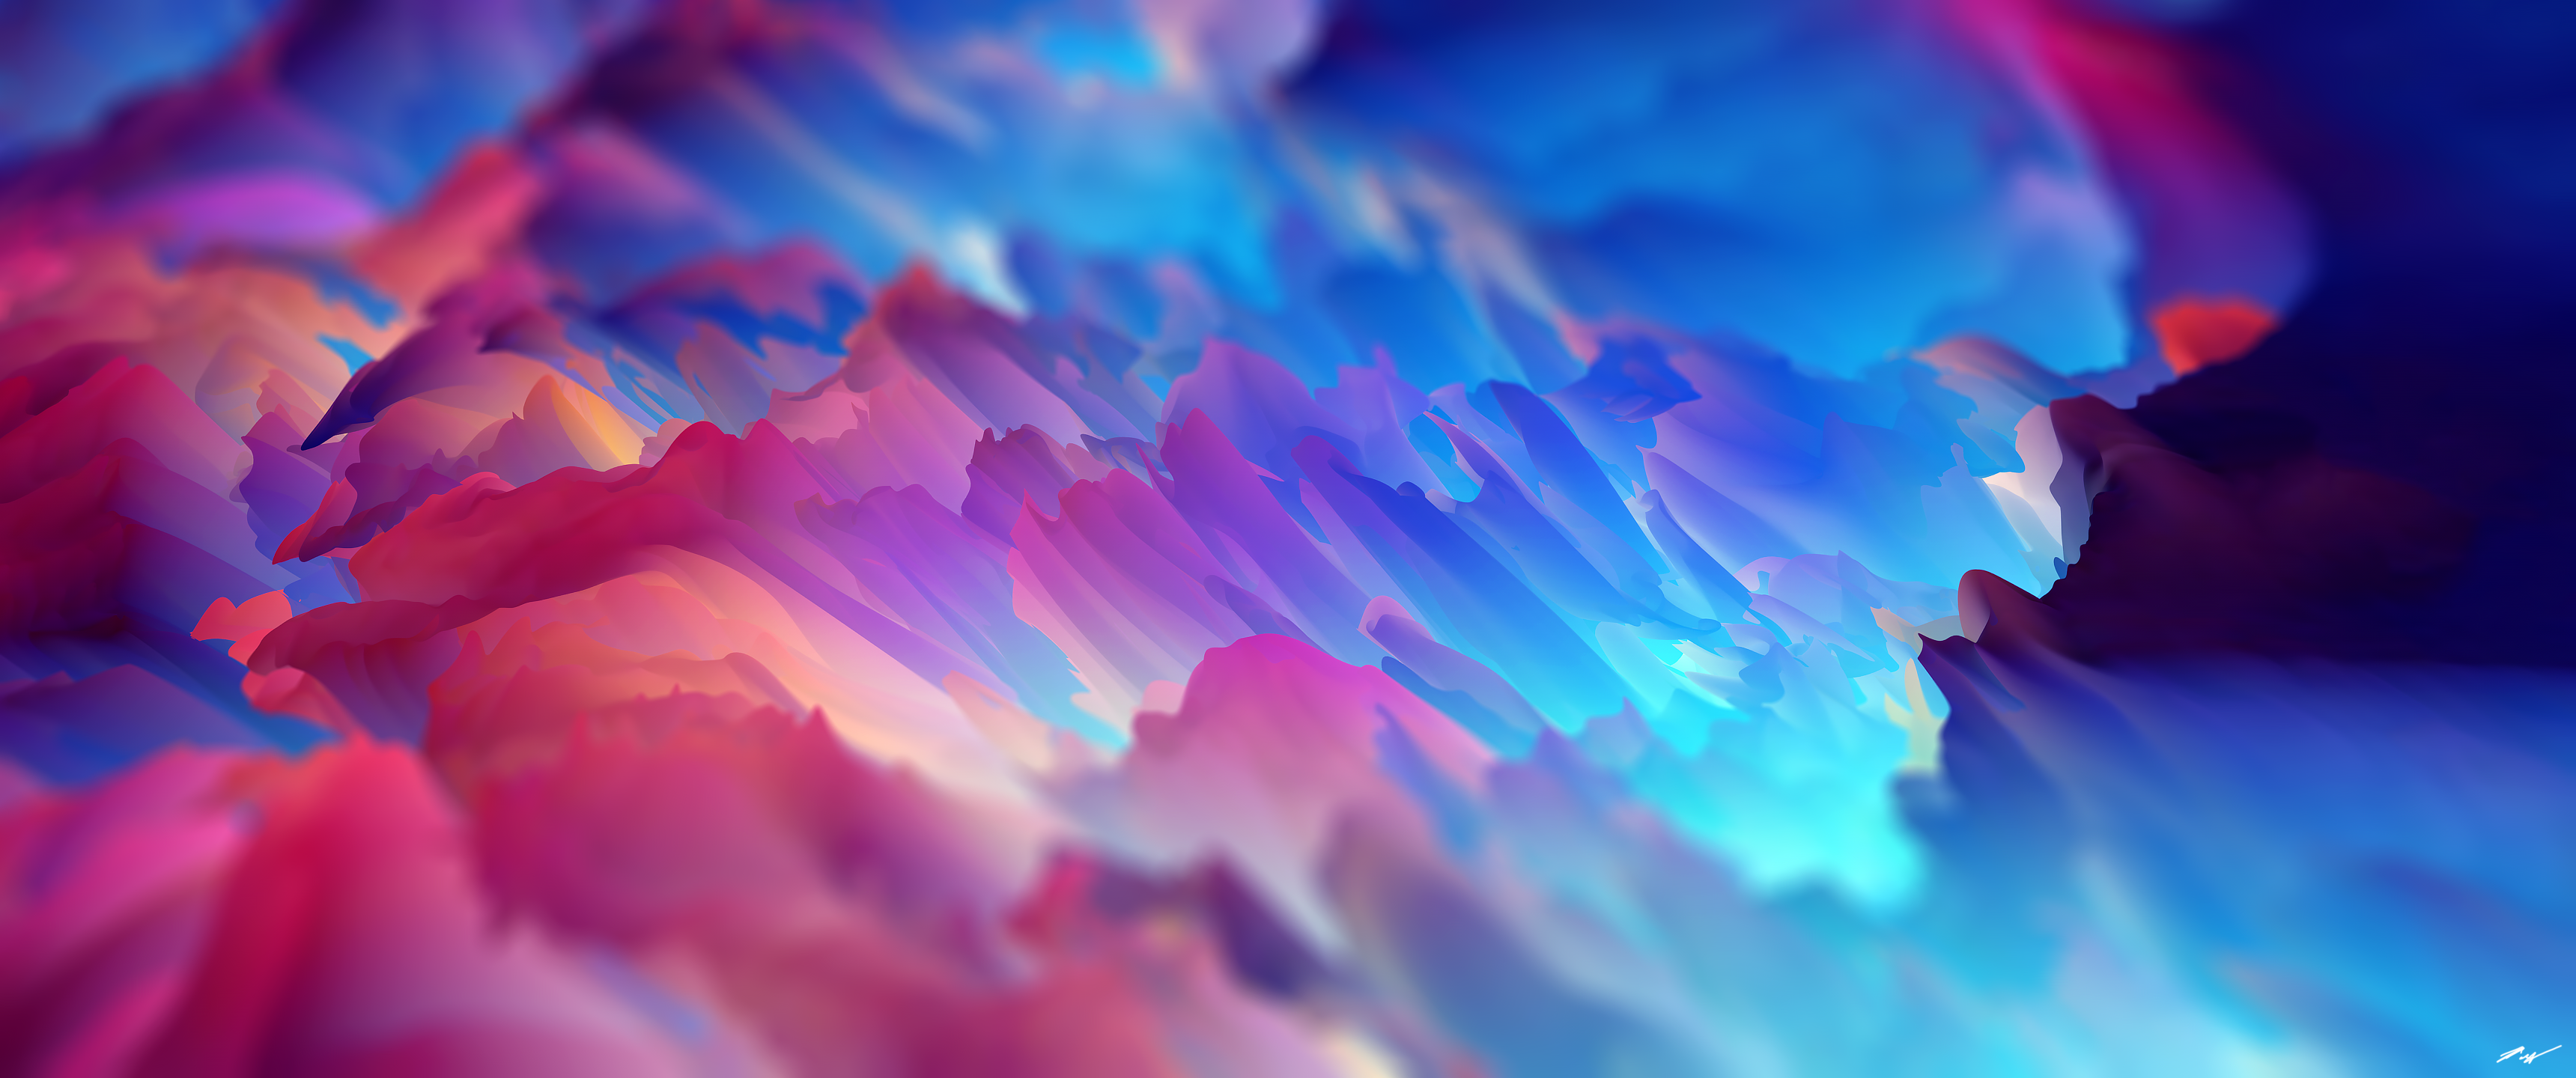 General 3440x1440 dreamscape space abstract 3D Abstract Cinema 4D colorful cyan pink